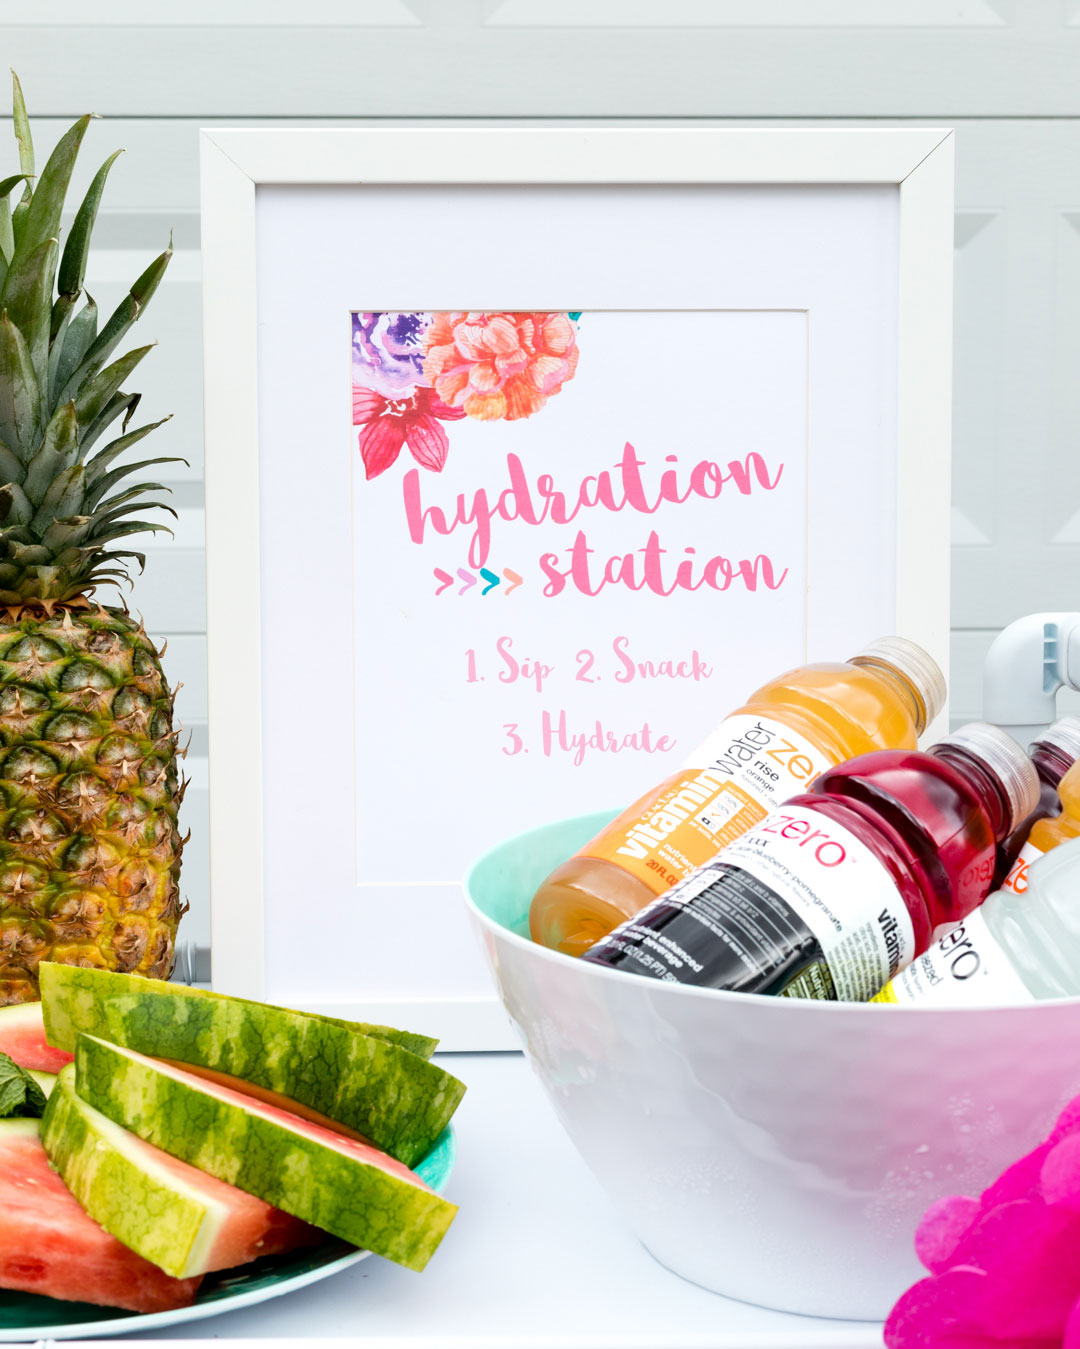 Hydration Ideas for Summer Parties